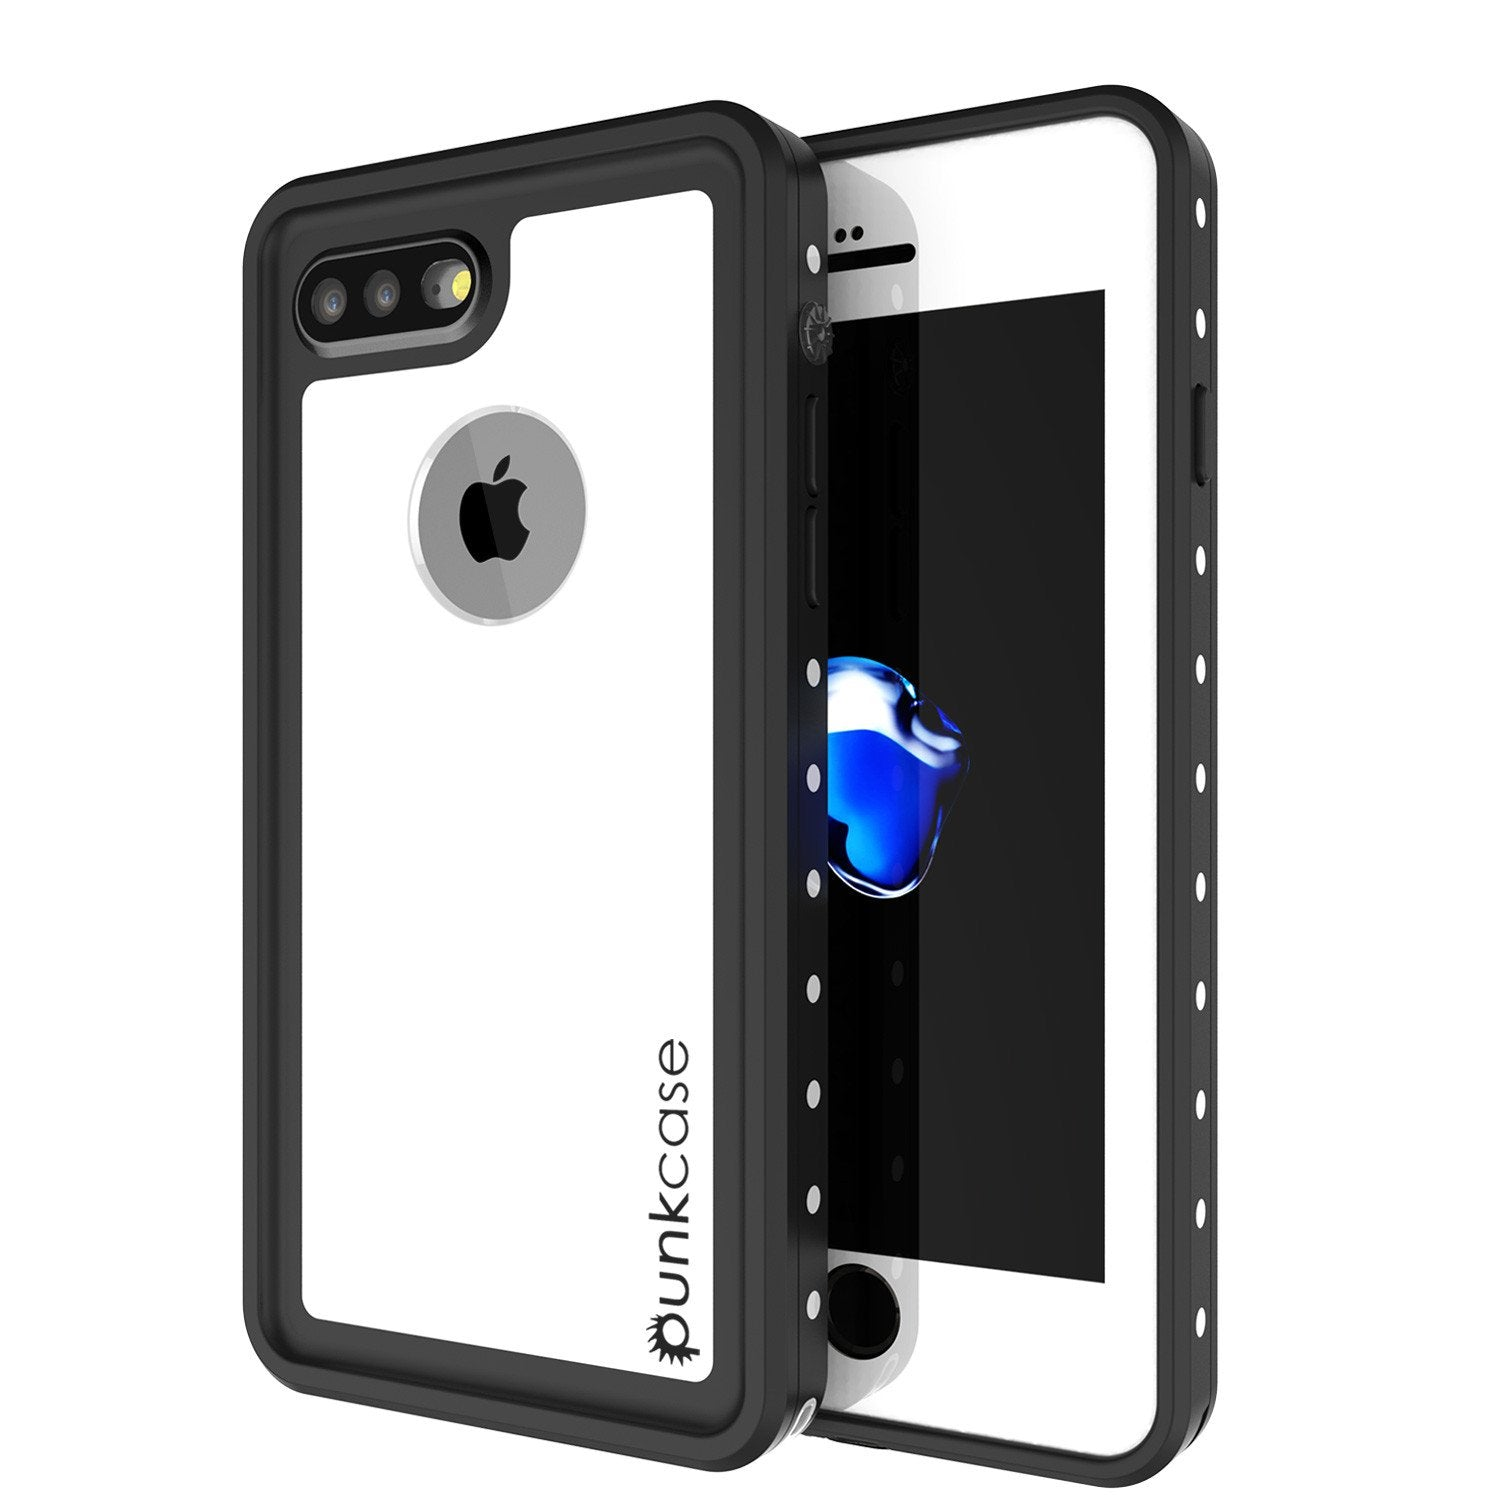 iPhone 8+ Plus Waterproof IP68 Case, Punkcase [White] [StudStar Series] [Slim Fit] [Dirtproof]